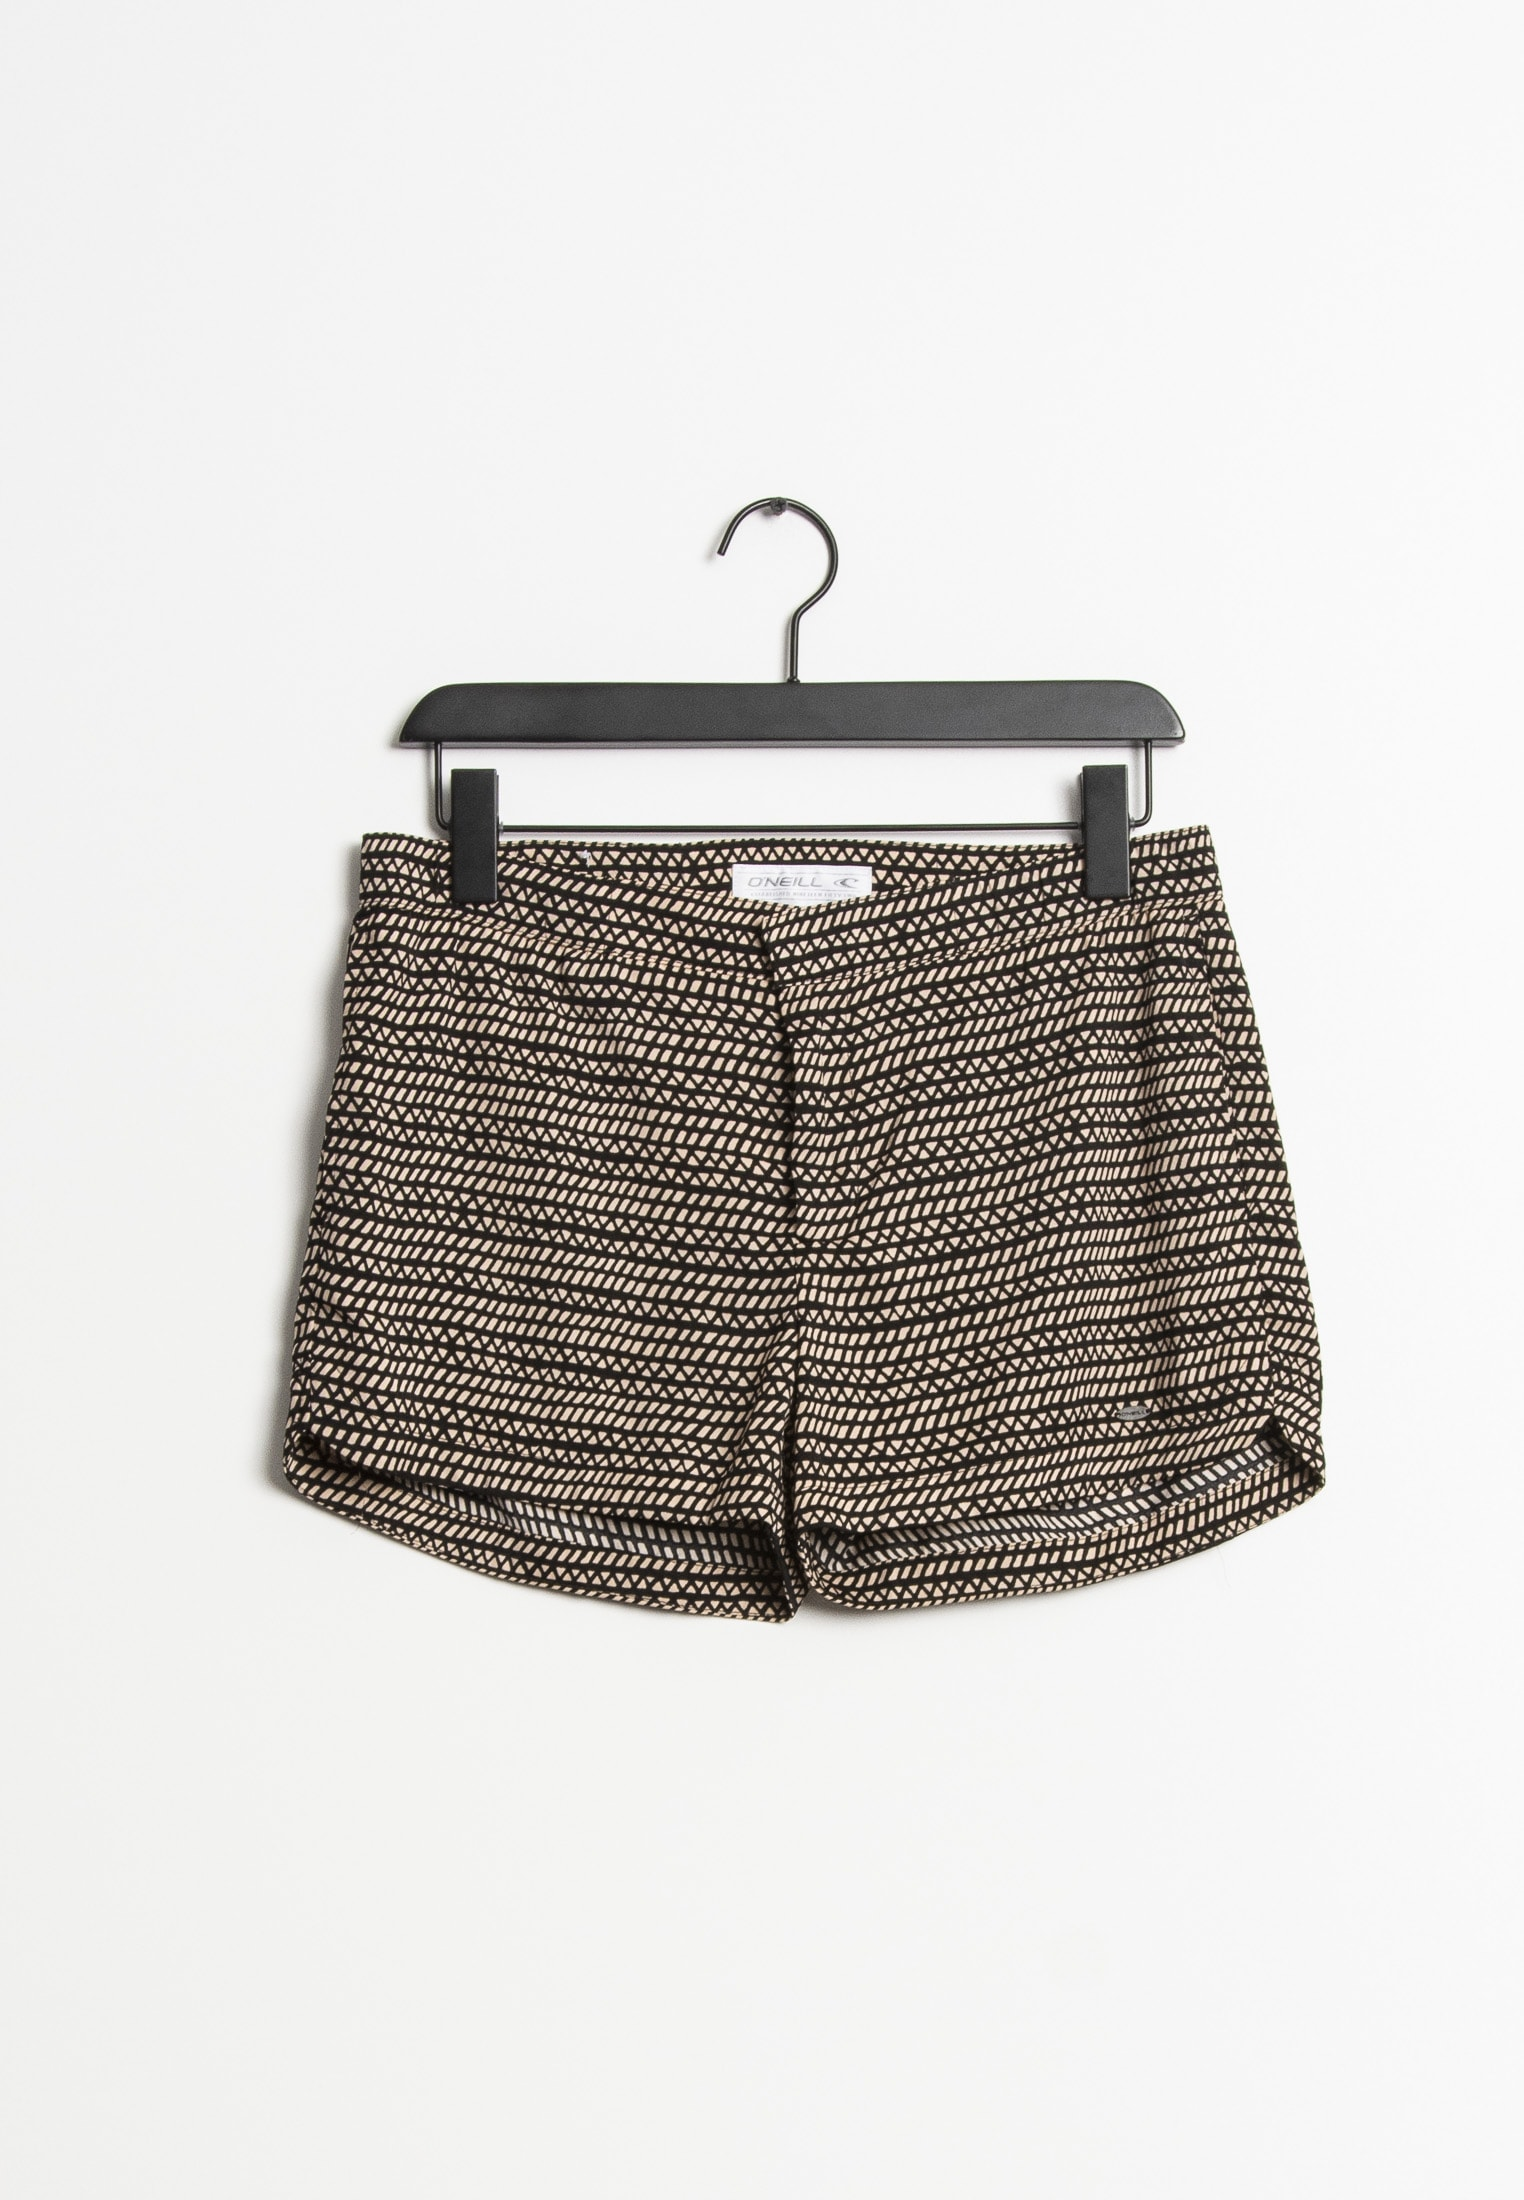 O'Neill shorts, sort, S